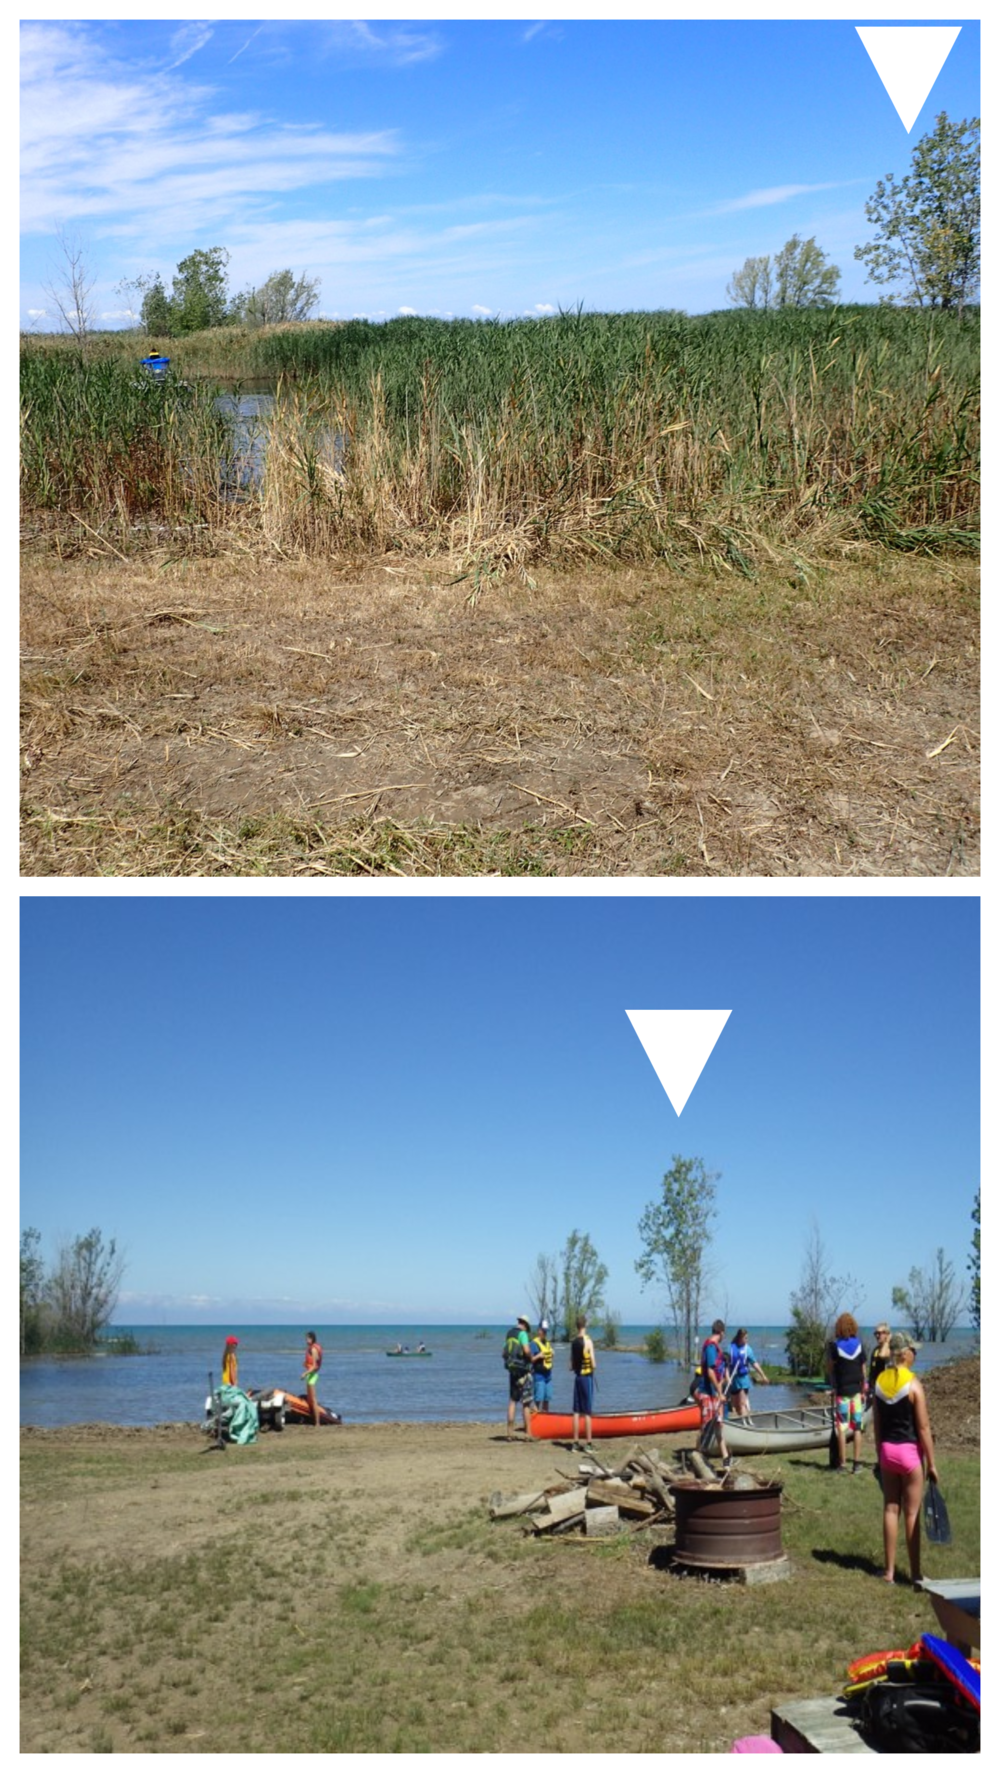 Before and after photos at the Lambton Centre camphround in Kettle Point. White triangles show landmark markers.